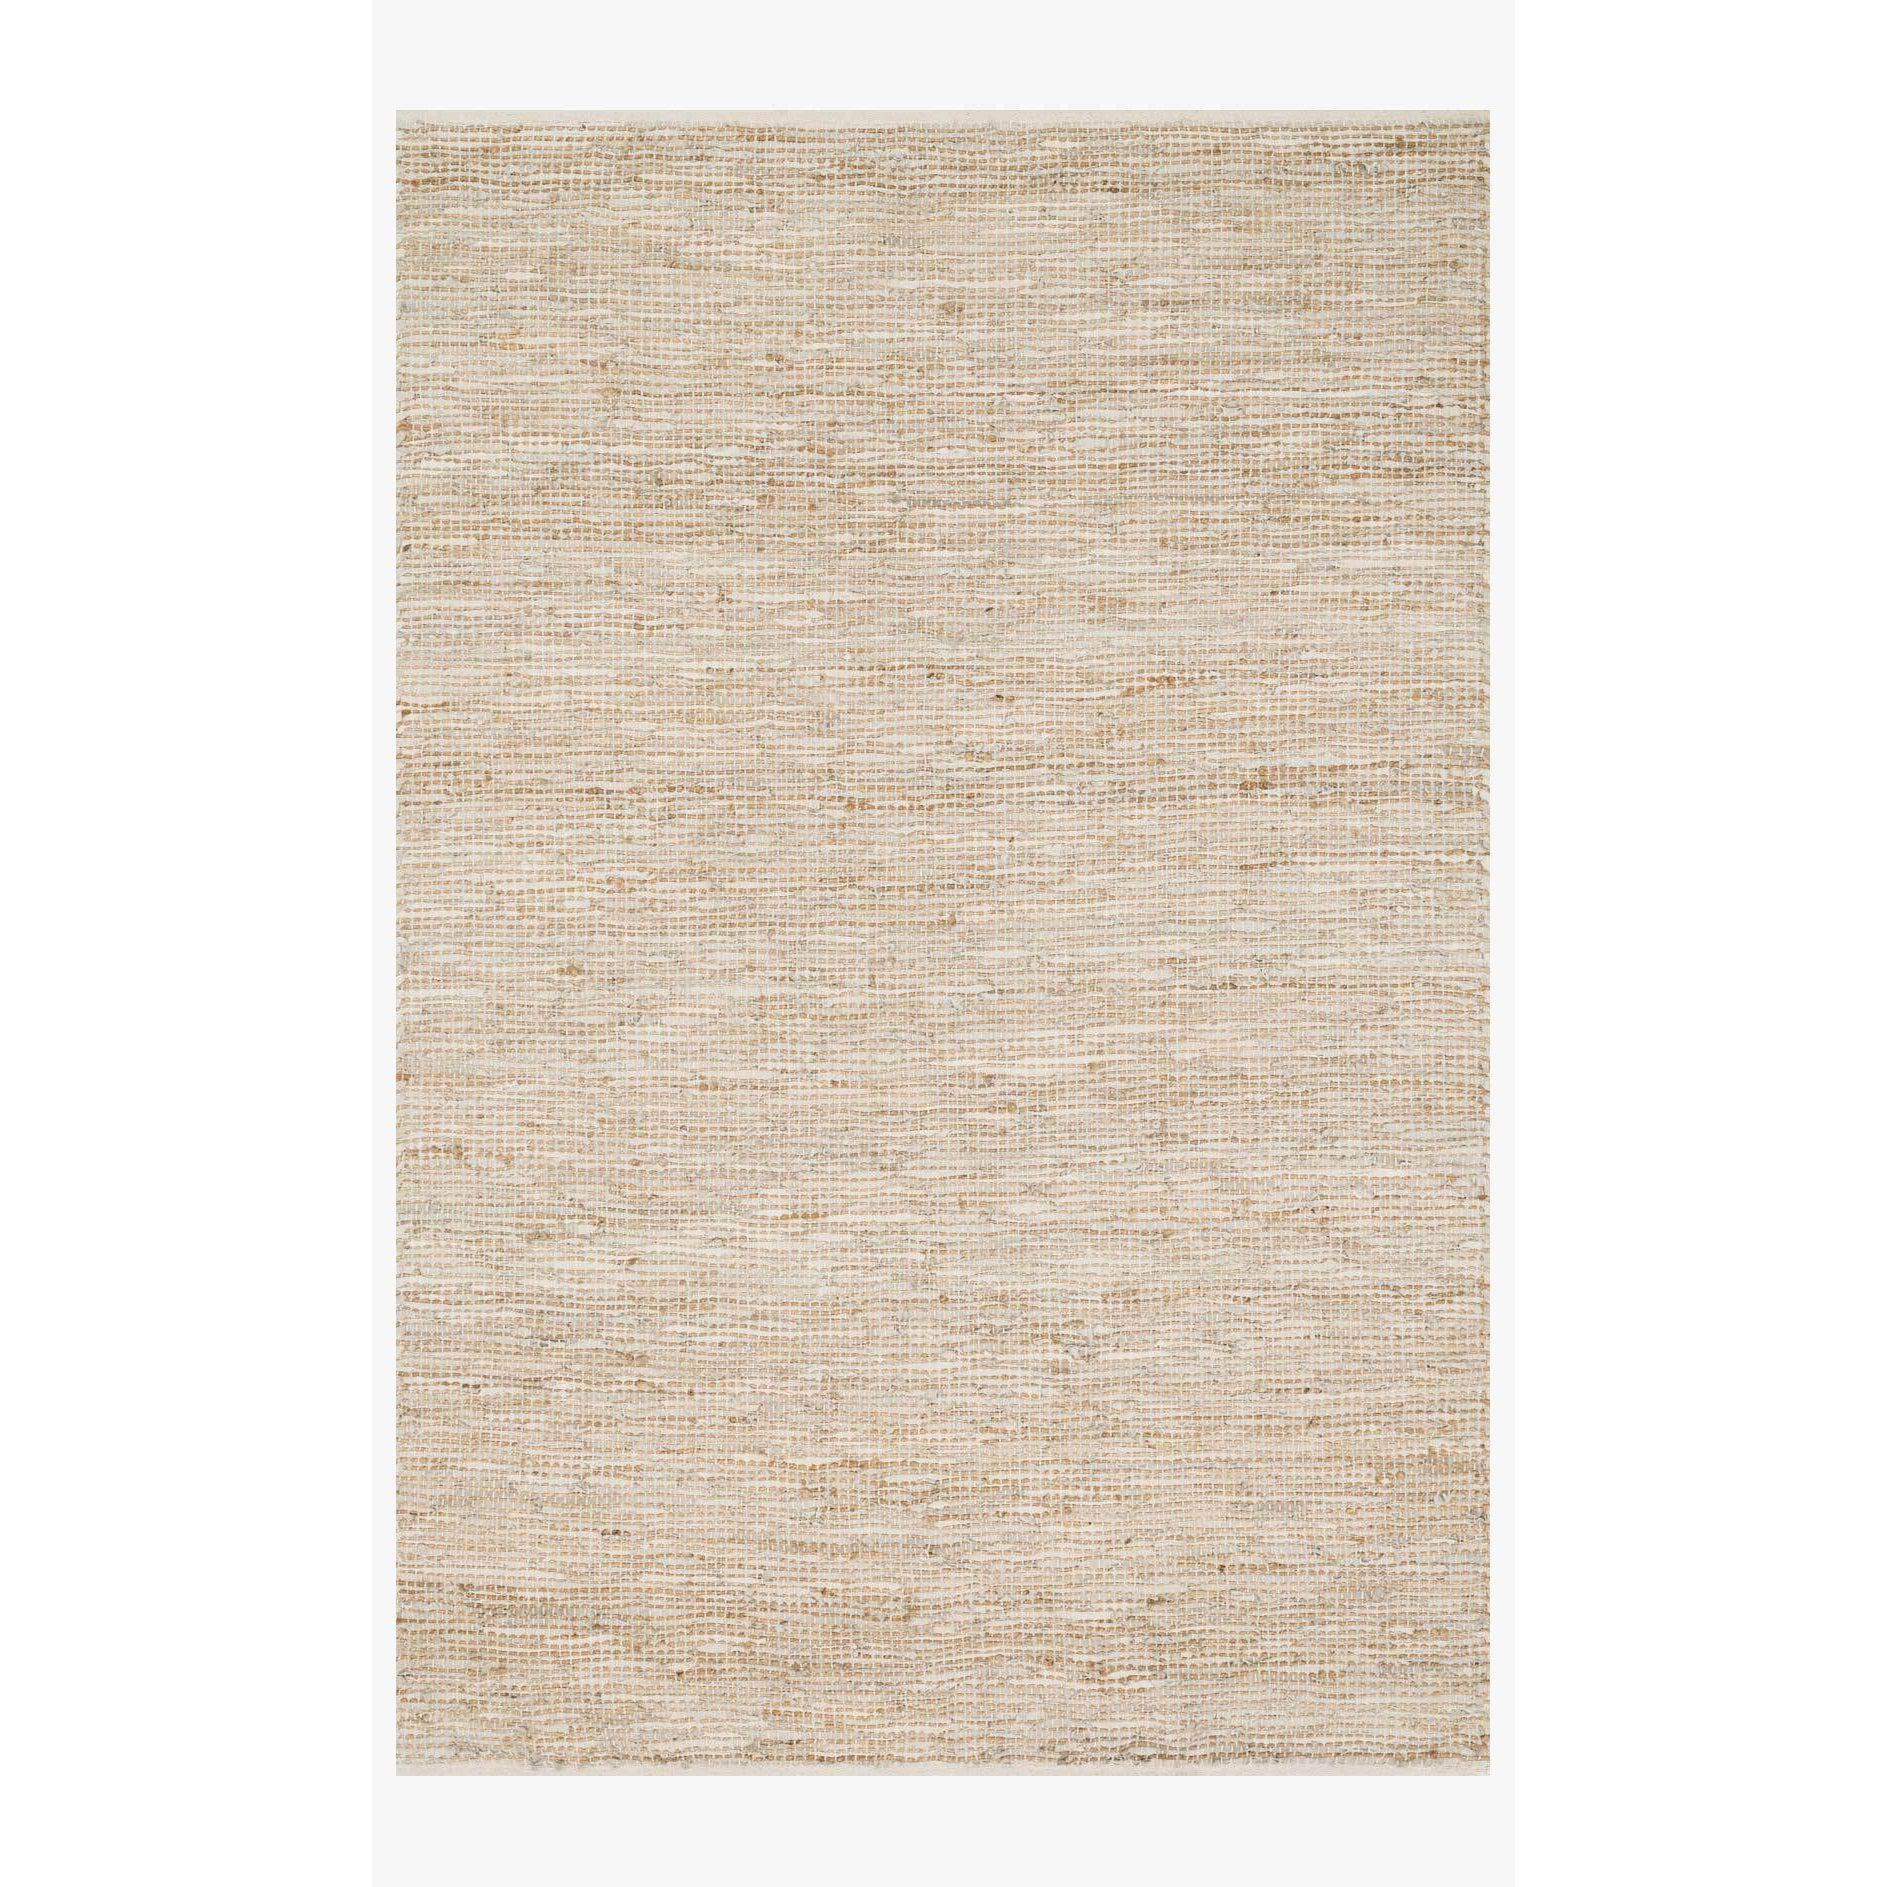 Edge Rug by Loloi Rugs - ED-01 - Ivory